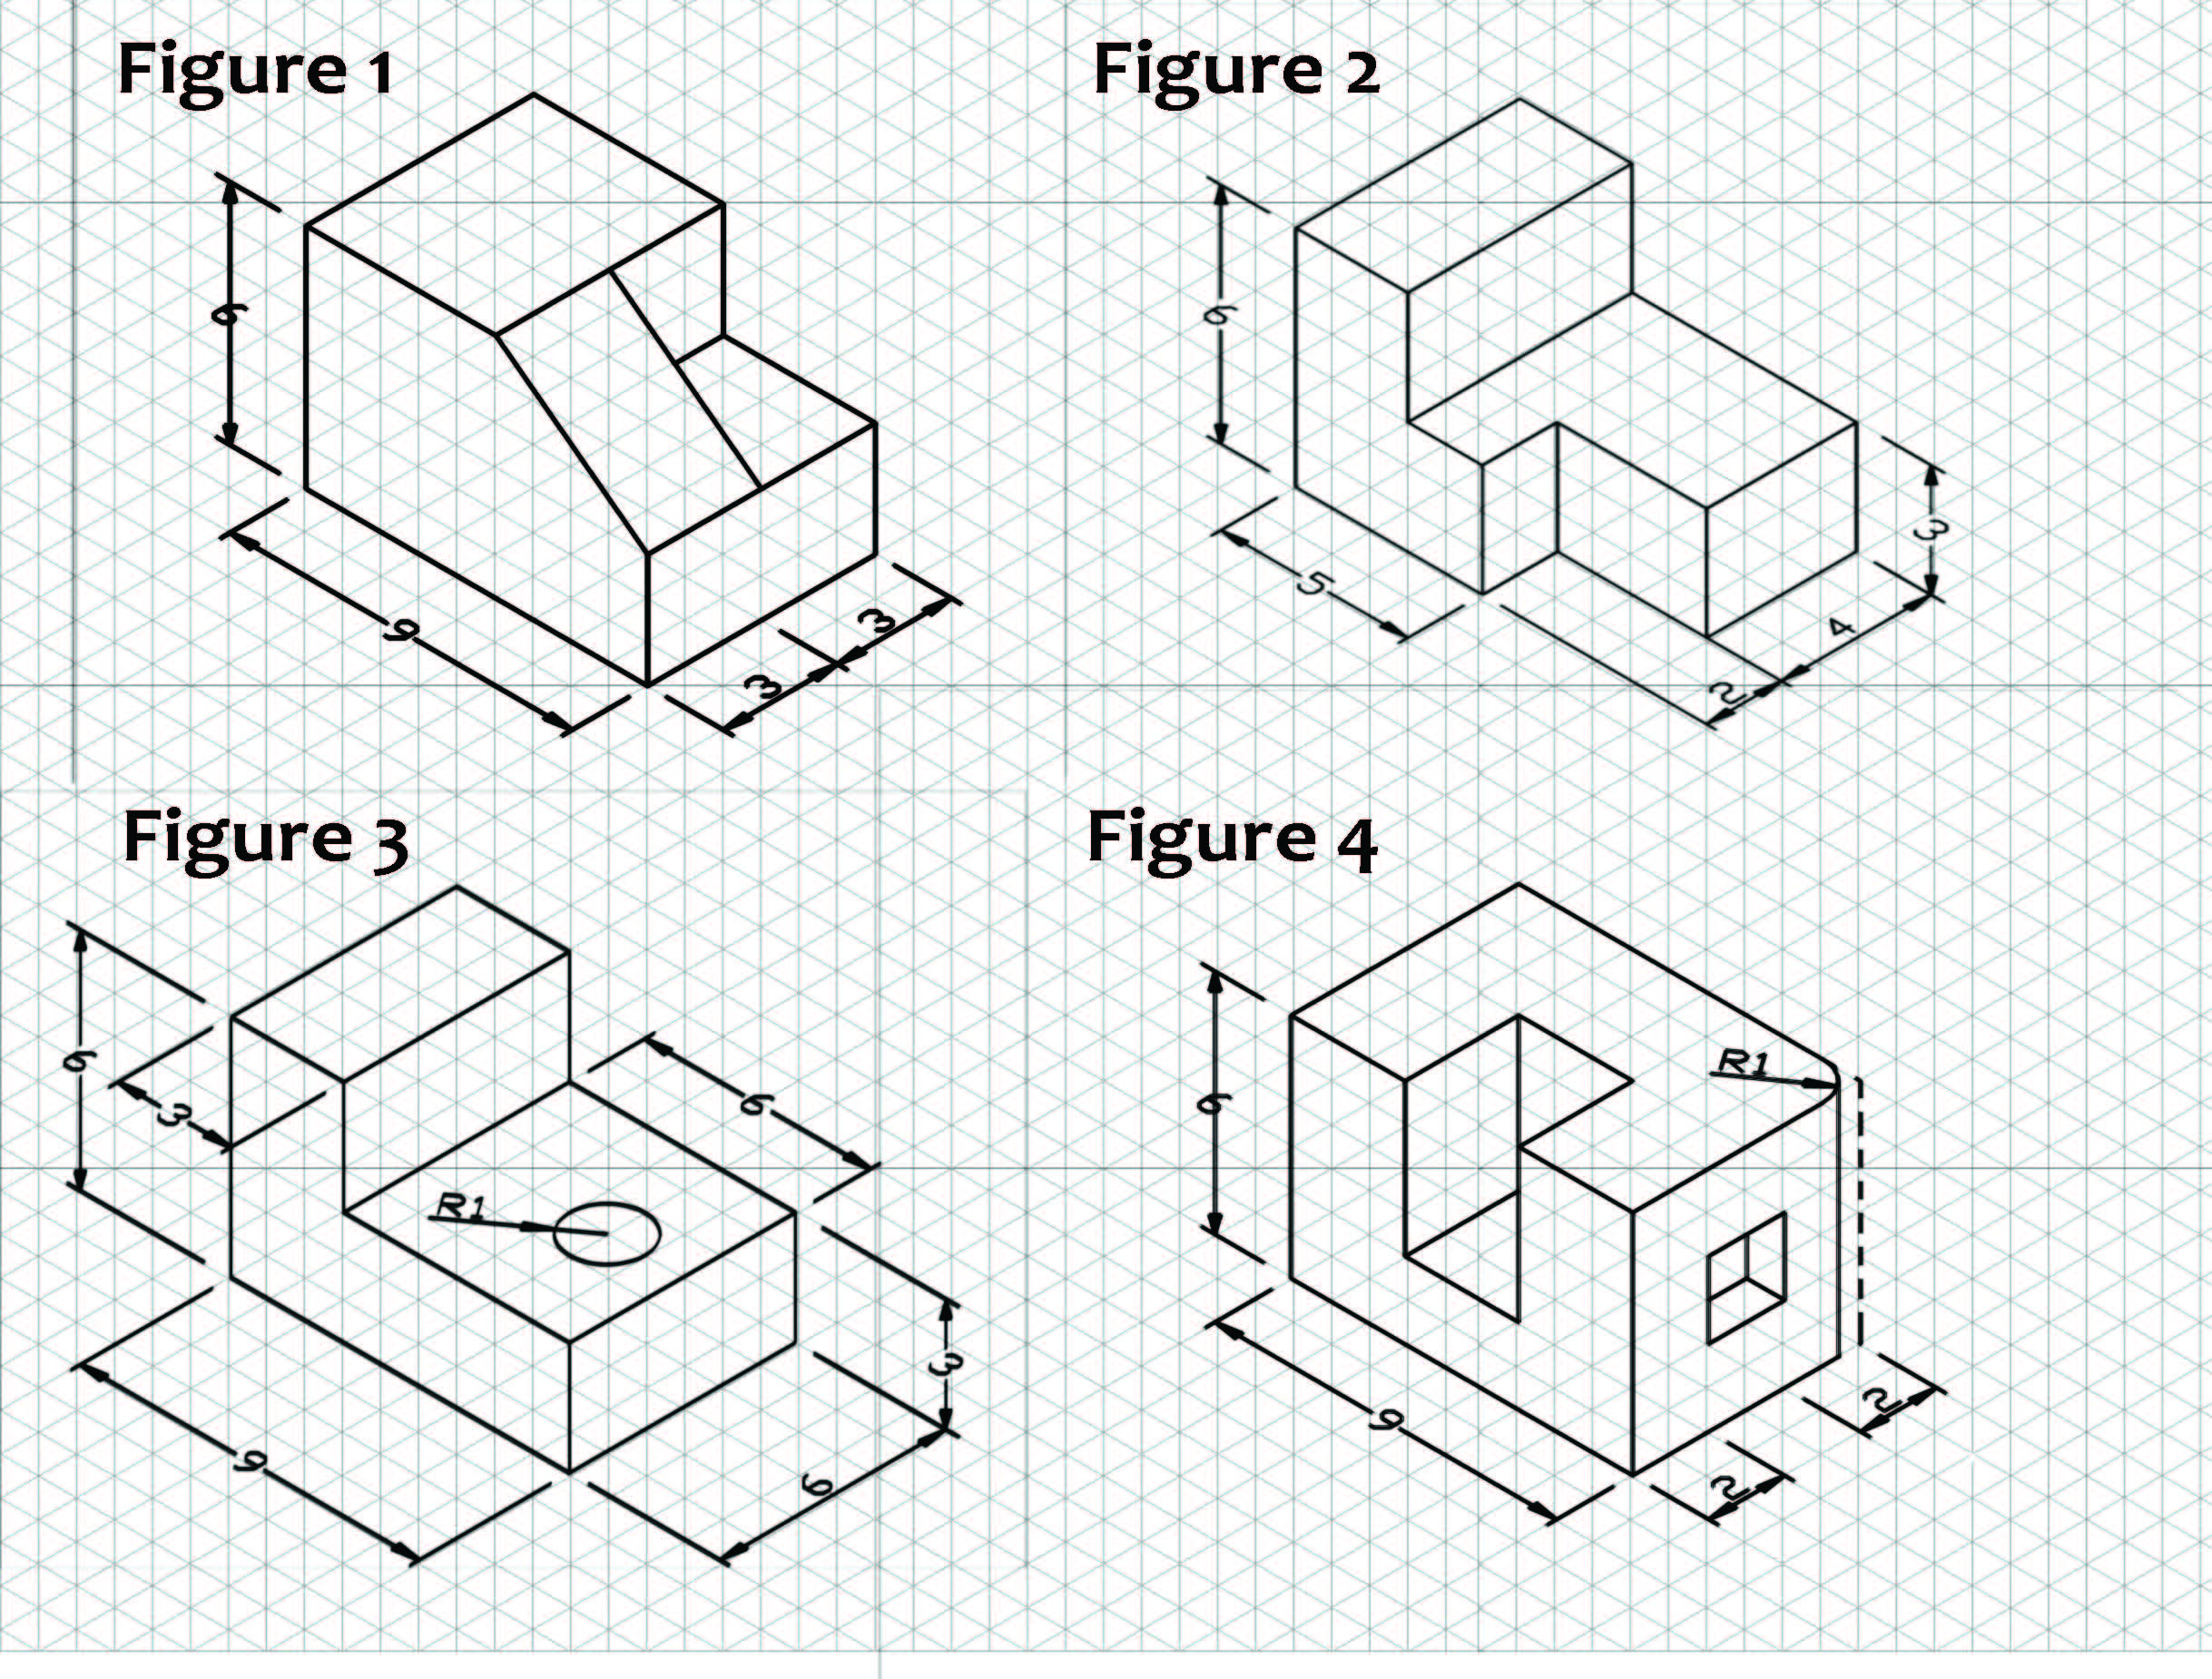 medium resolution of Oblique To Isometric Drawings Worksheets   Printable Worksheets and  Activities for Teachers